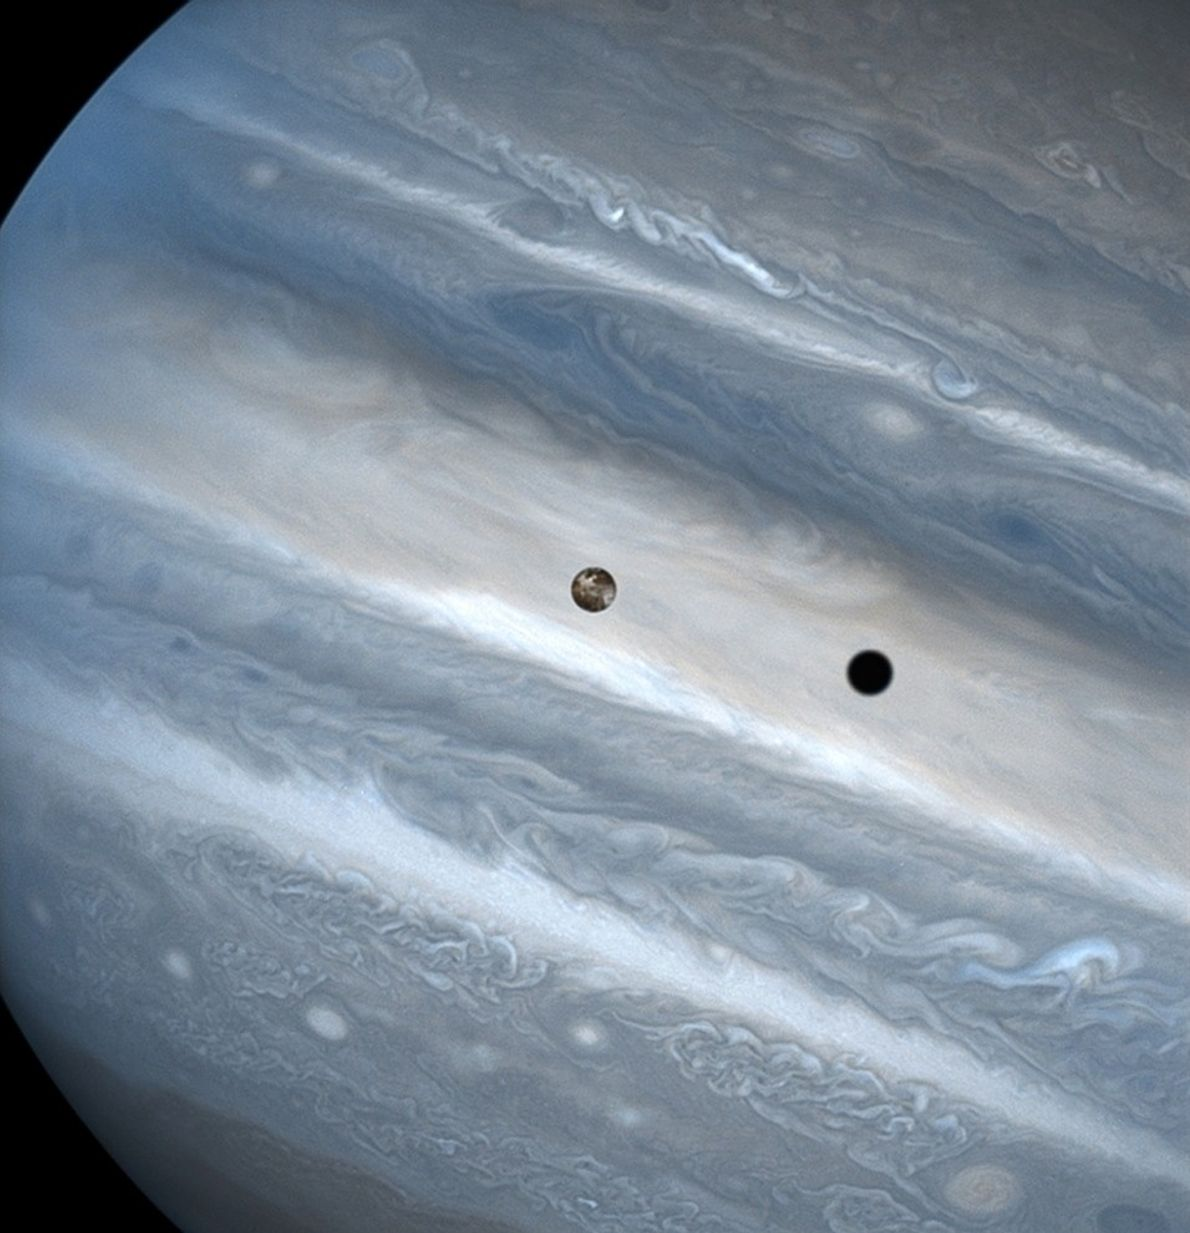 In 1999, to commemorate the ninth anniversary since its launch, theHubble Space Telescope took this dramatic ...